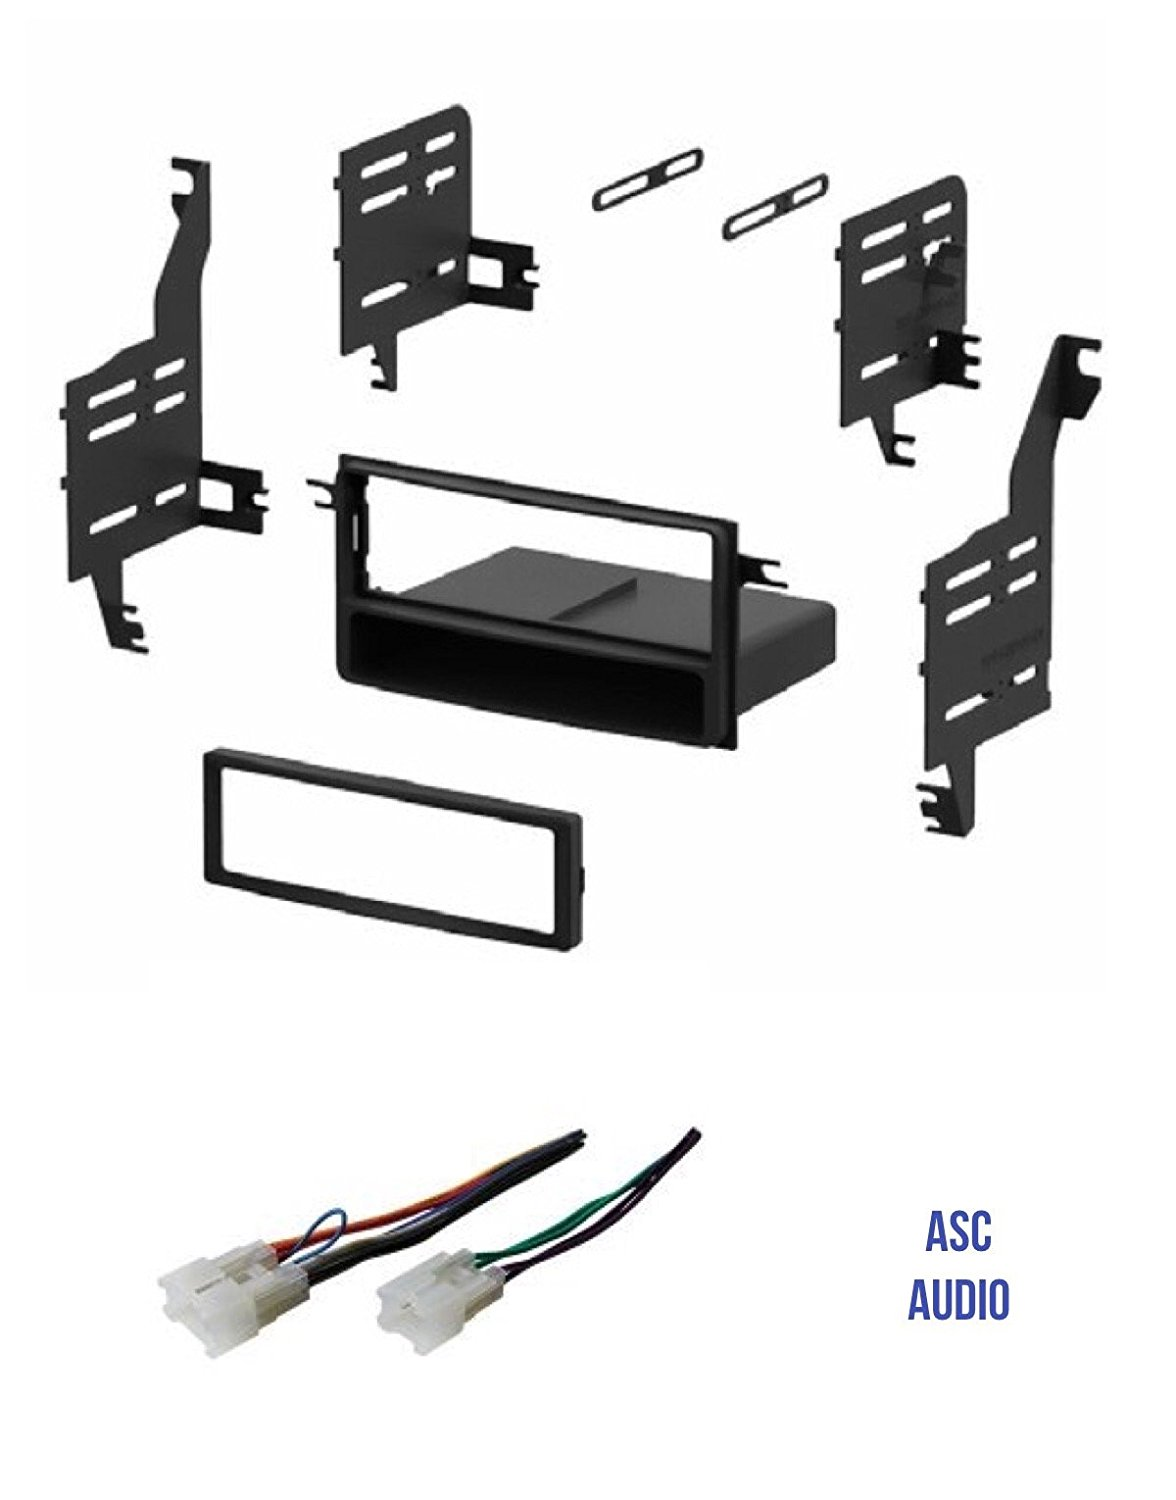 asc single din car stereo install dash kit and wire ... 2009 scion xd wiring diagram #11